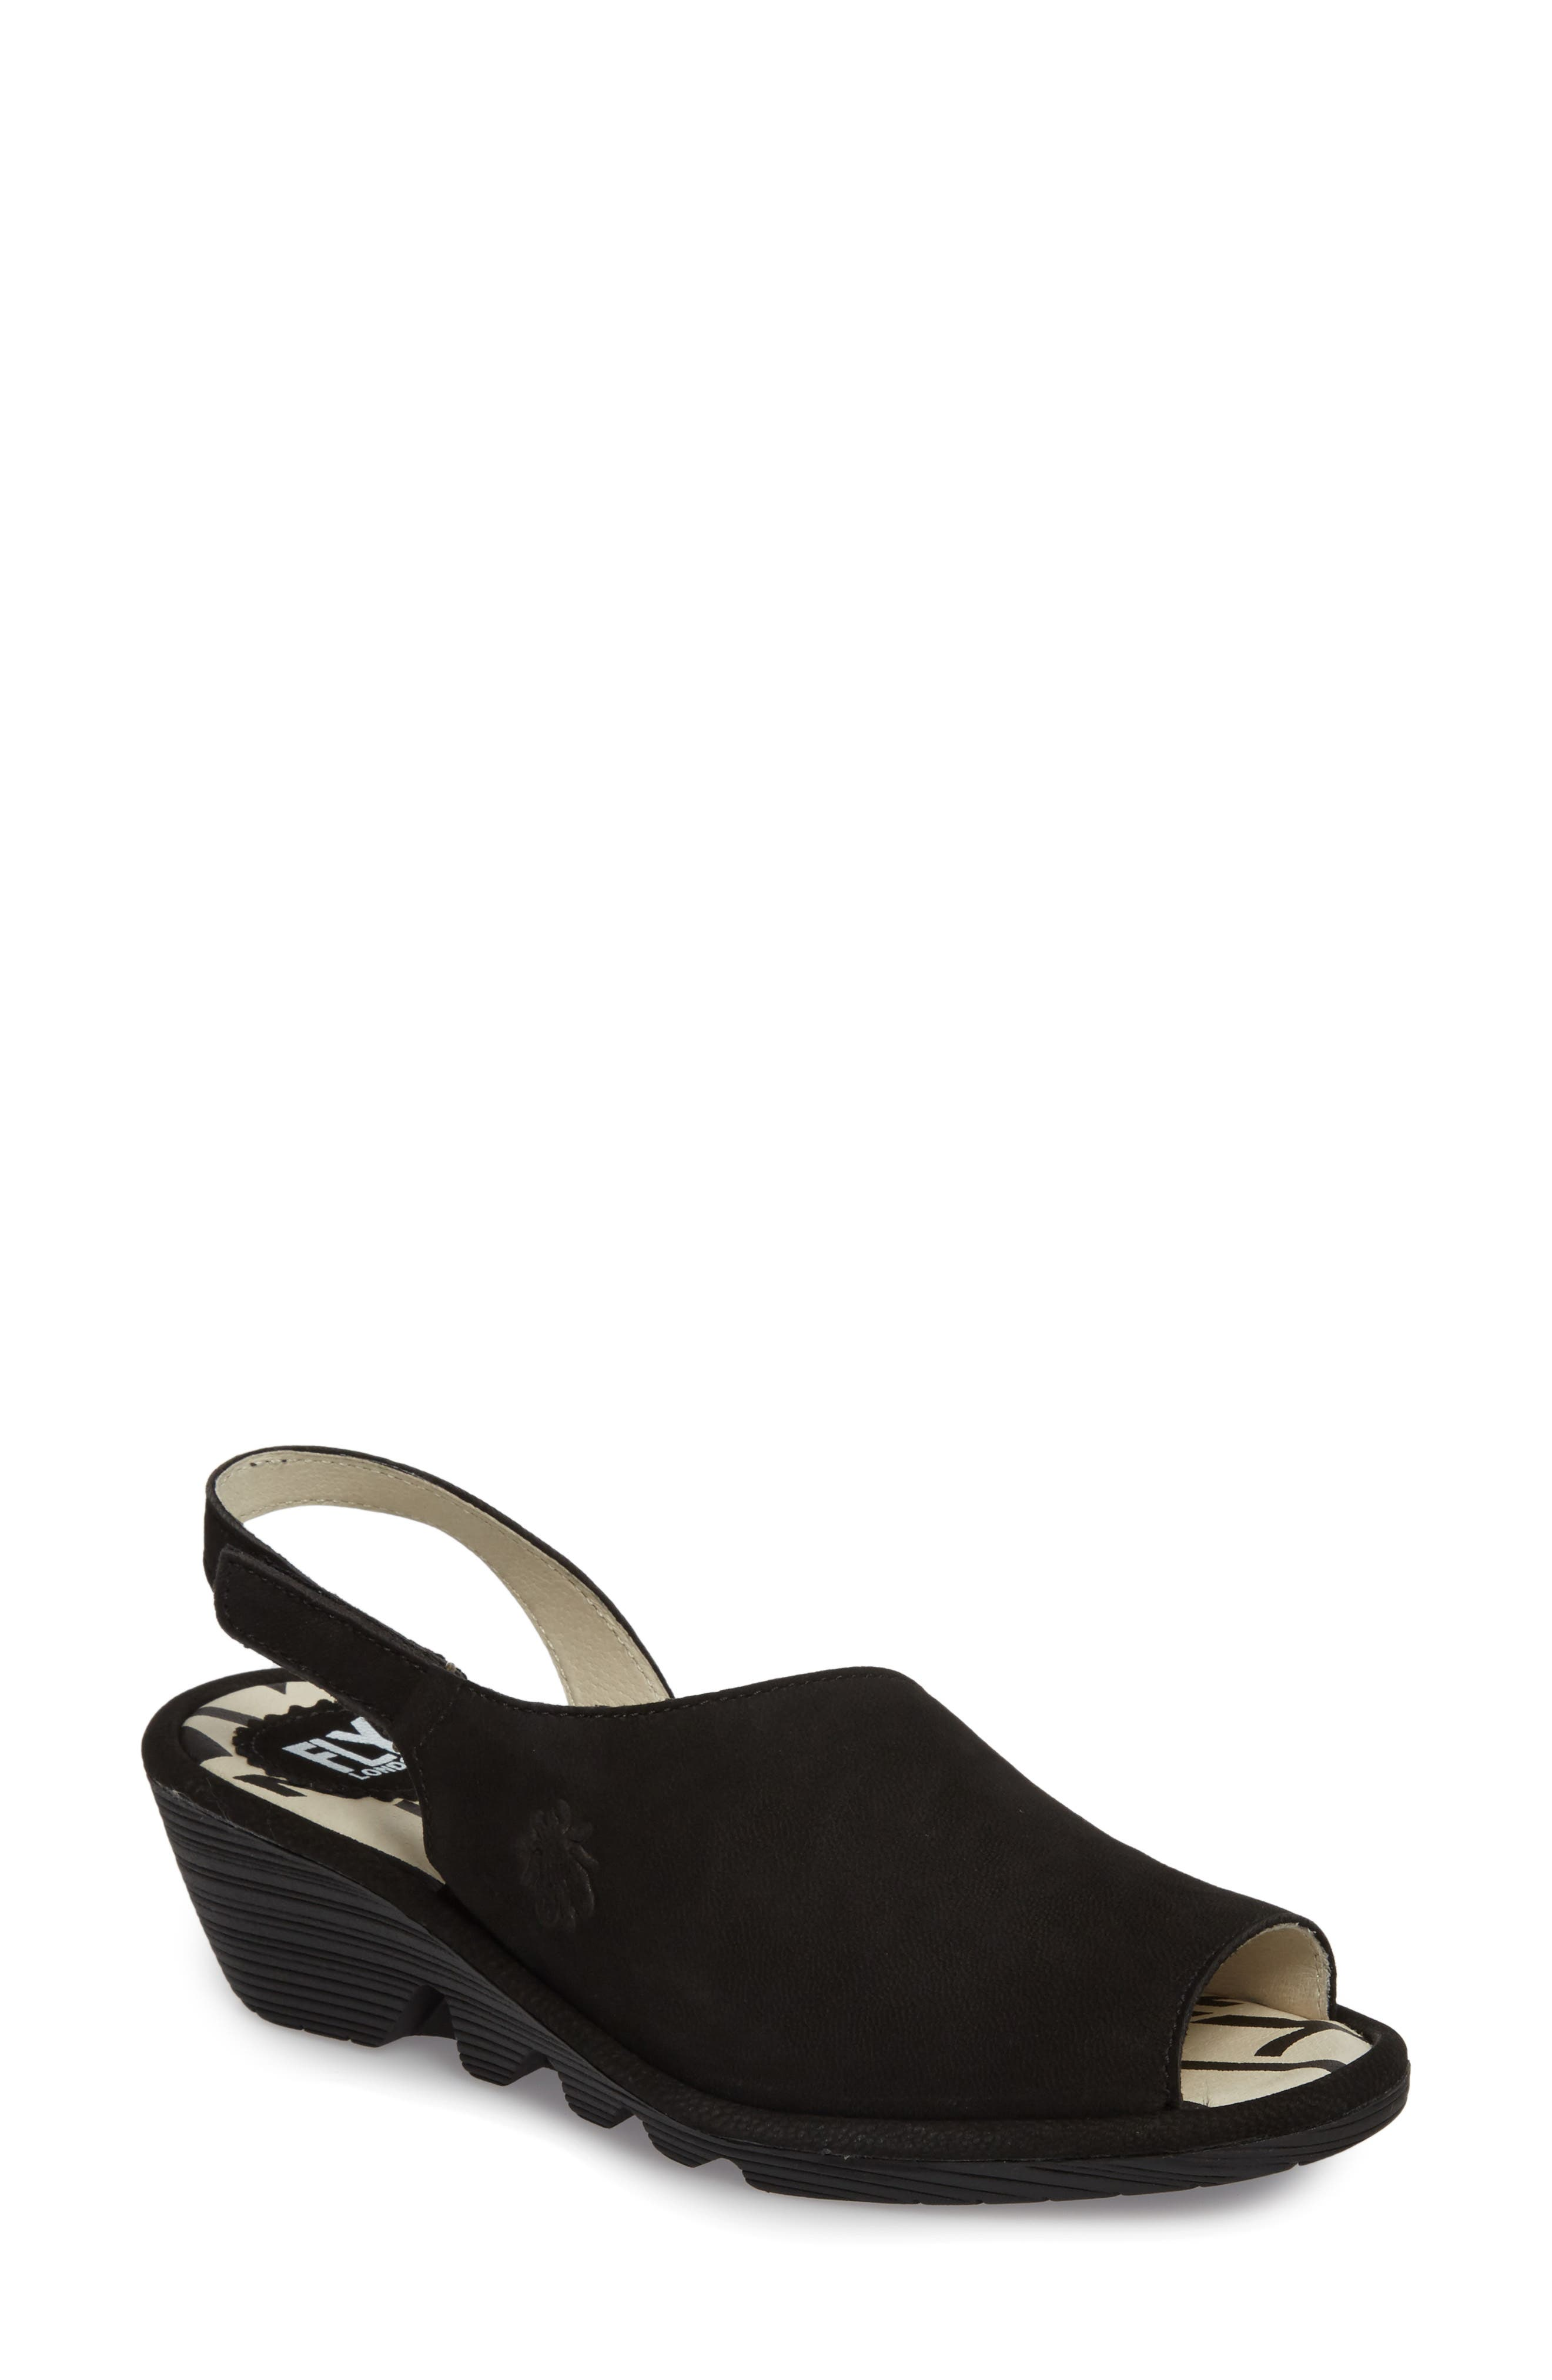 Palp Wedge Sandal,                         Main,                         color, BLACK CUPIDO LEATHER